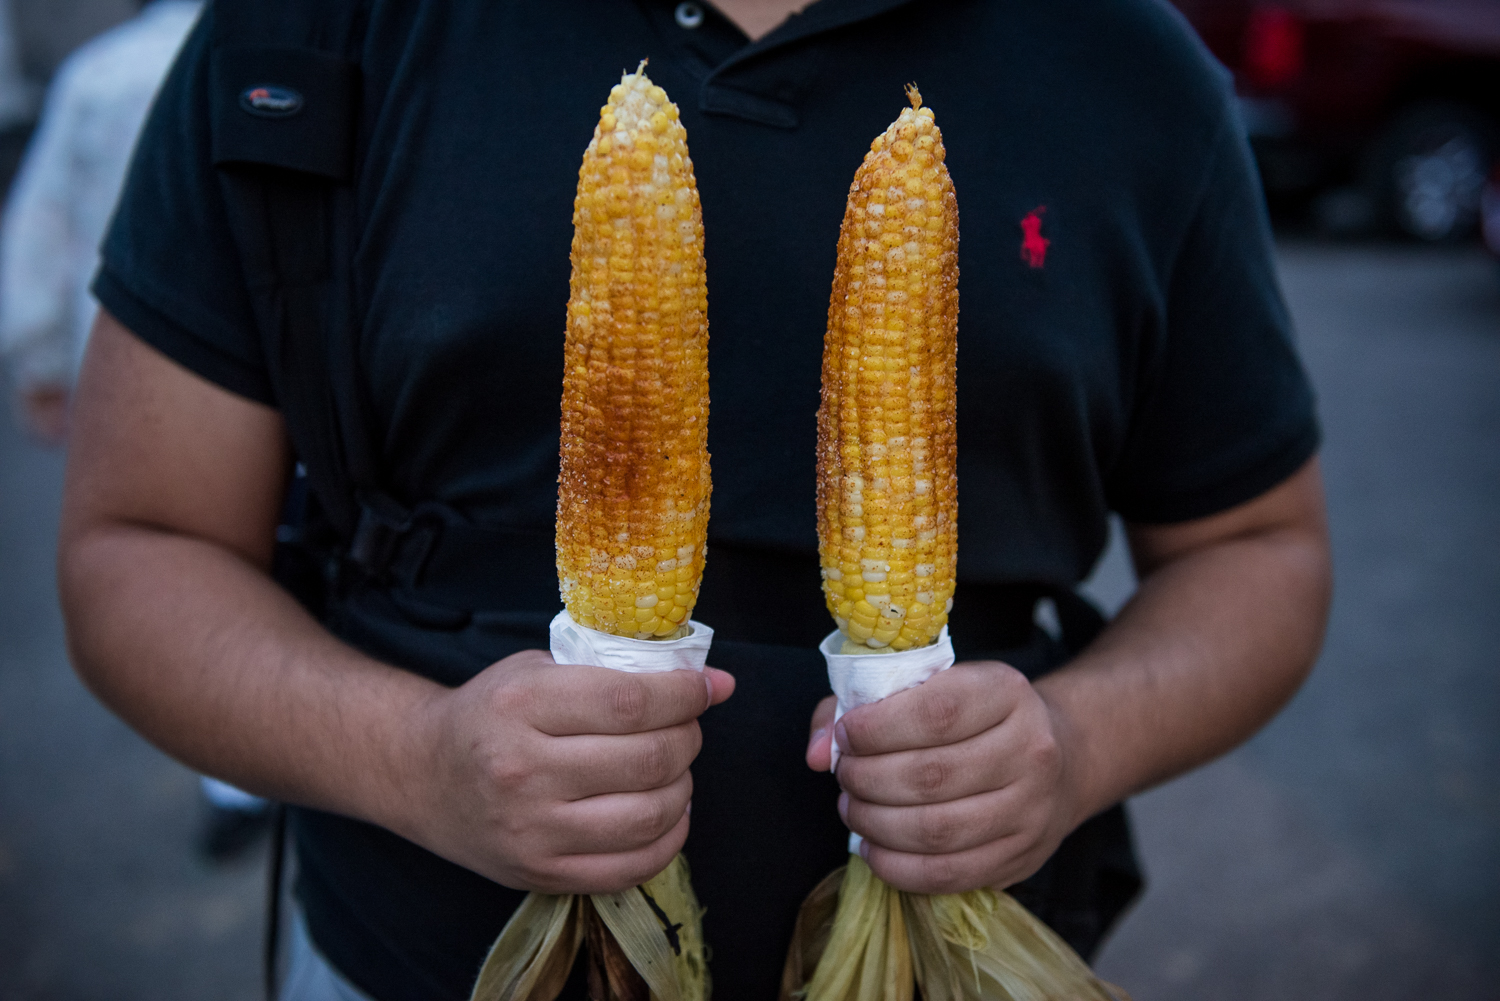 Atmosphere of Summer Music Festival  Musikfest, August 2016 in Bethlehem, Pennsylvania.  Seasoned Corn on the Cob from Aw Shucks Food Stand, Volksplatz.